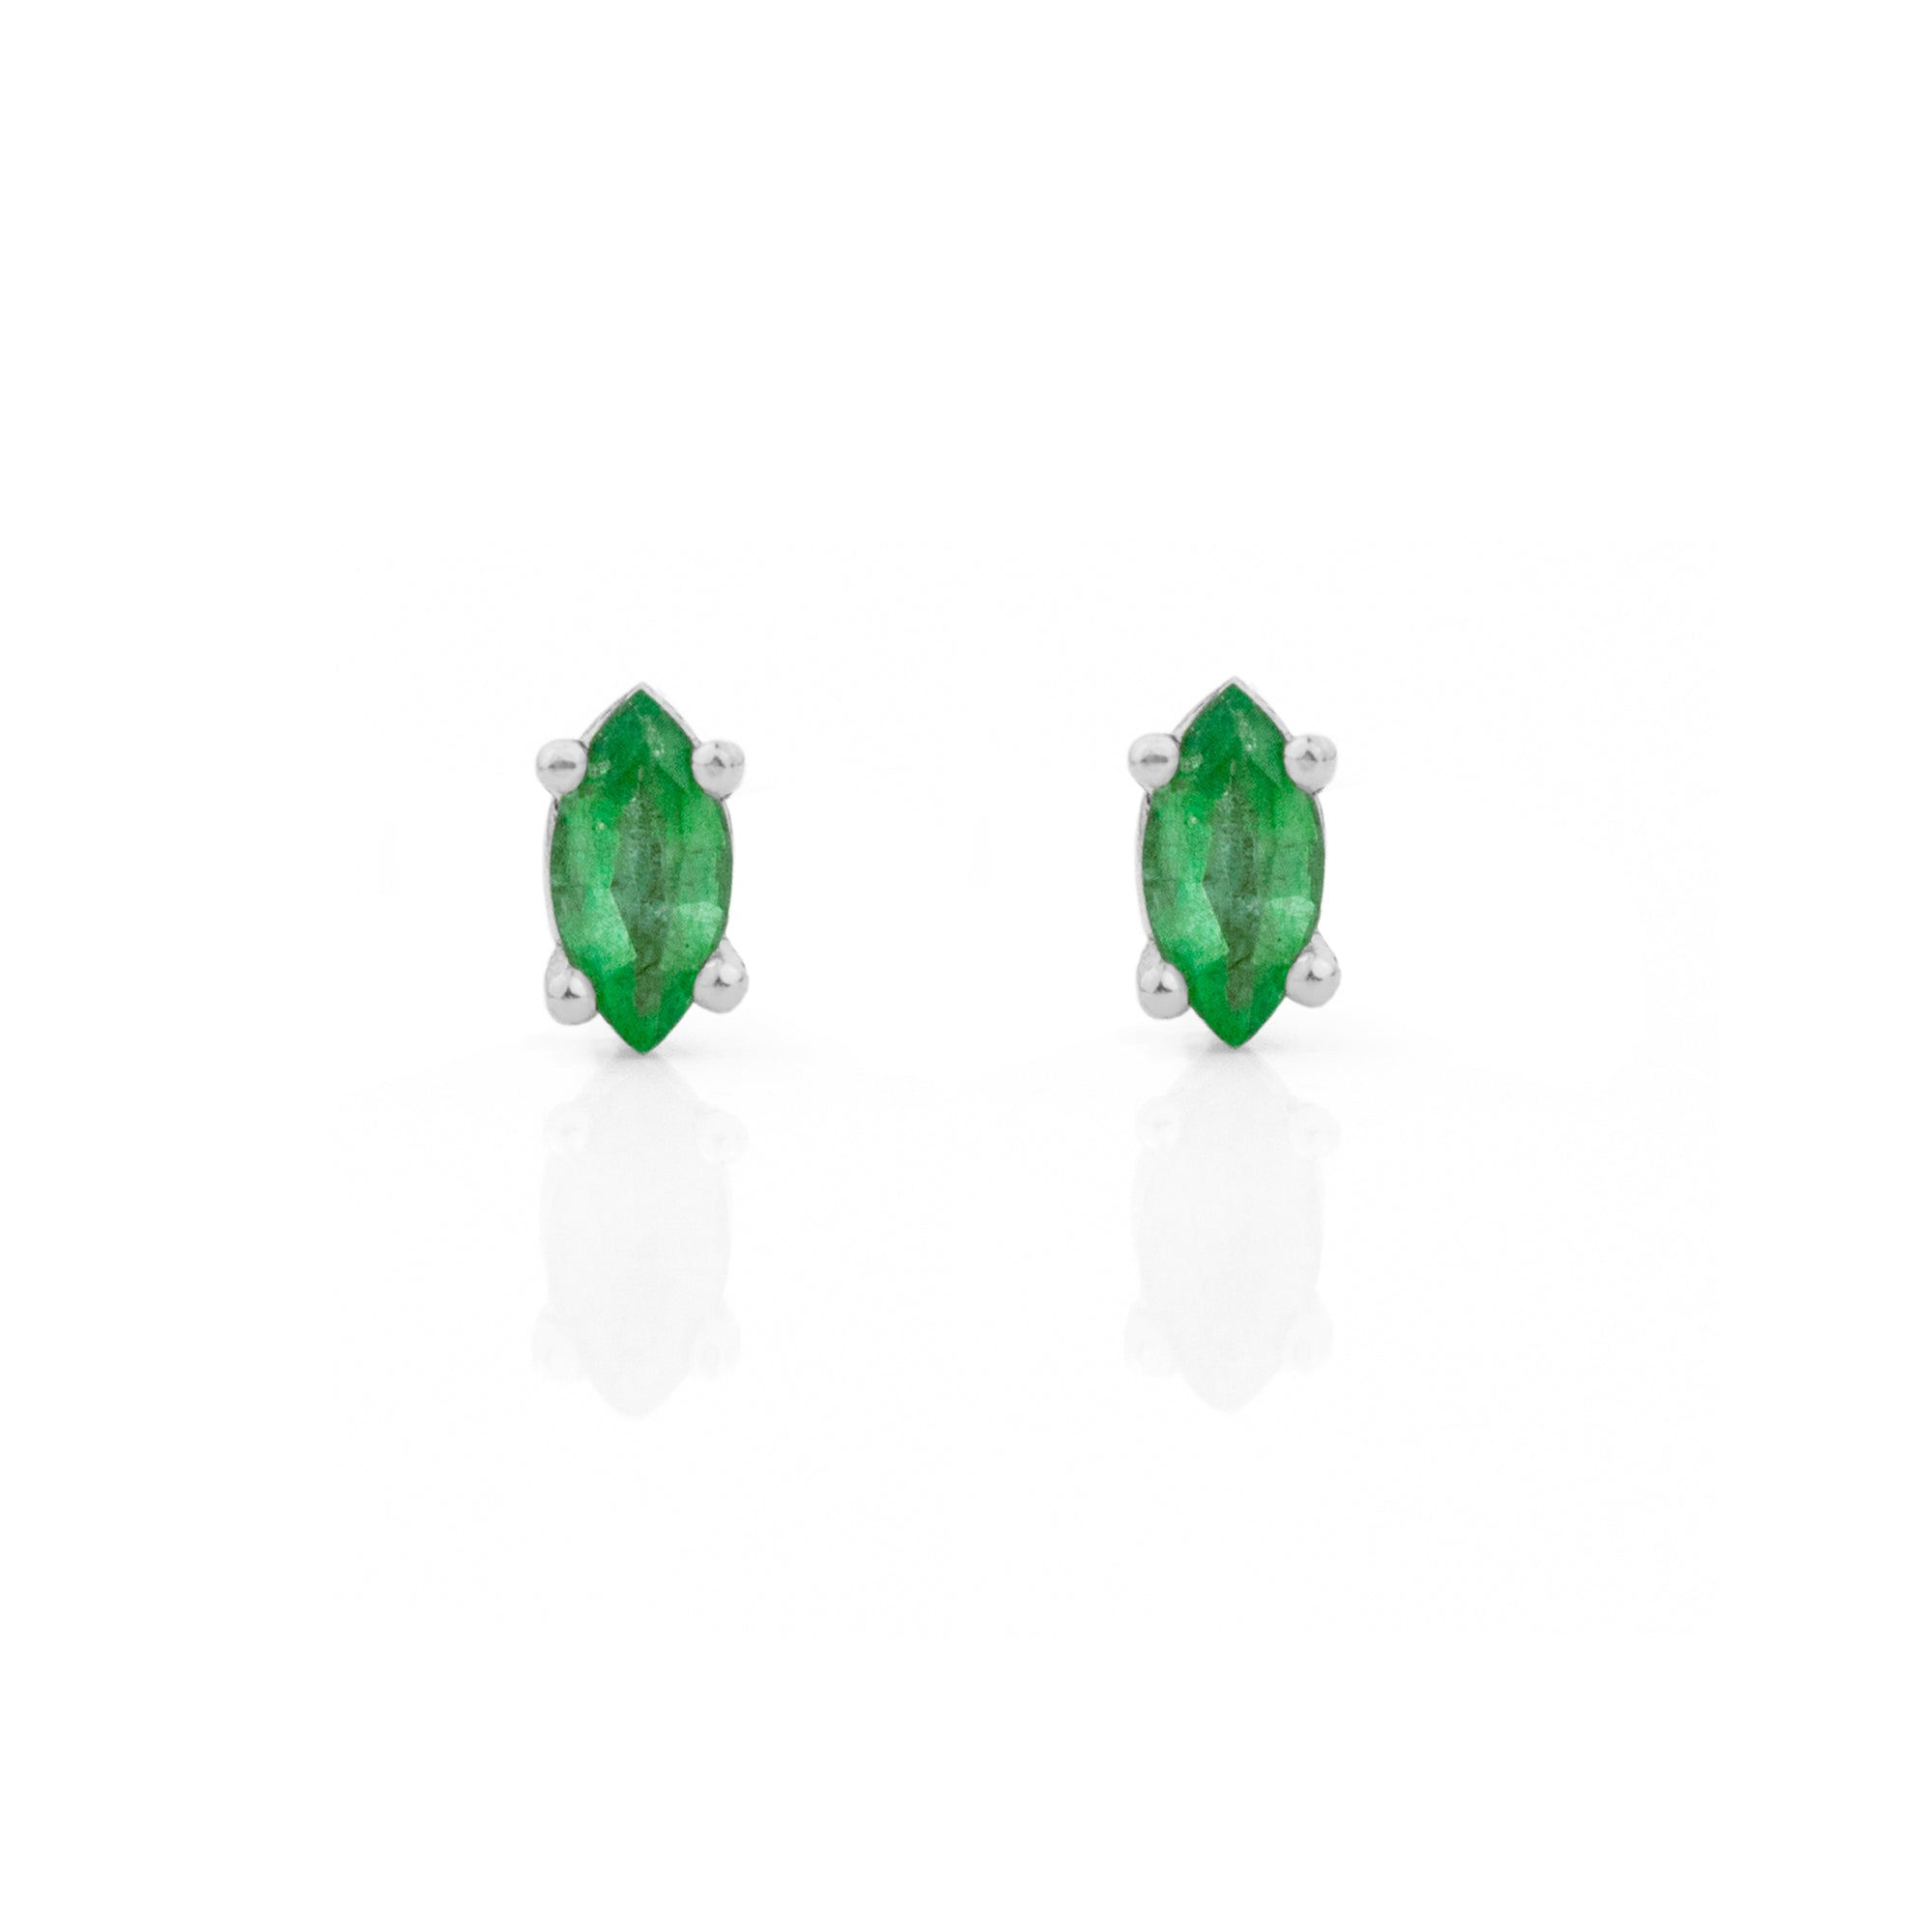 Marquise Emerald Stud Earrings